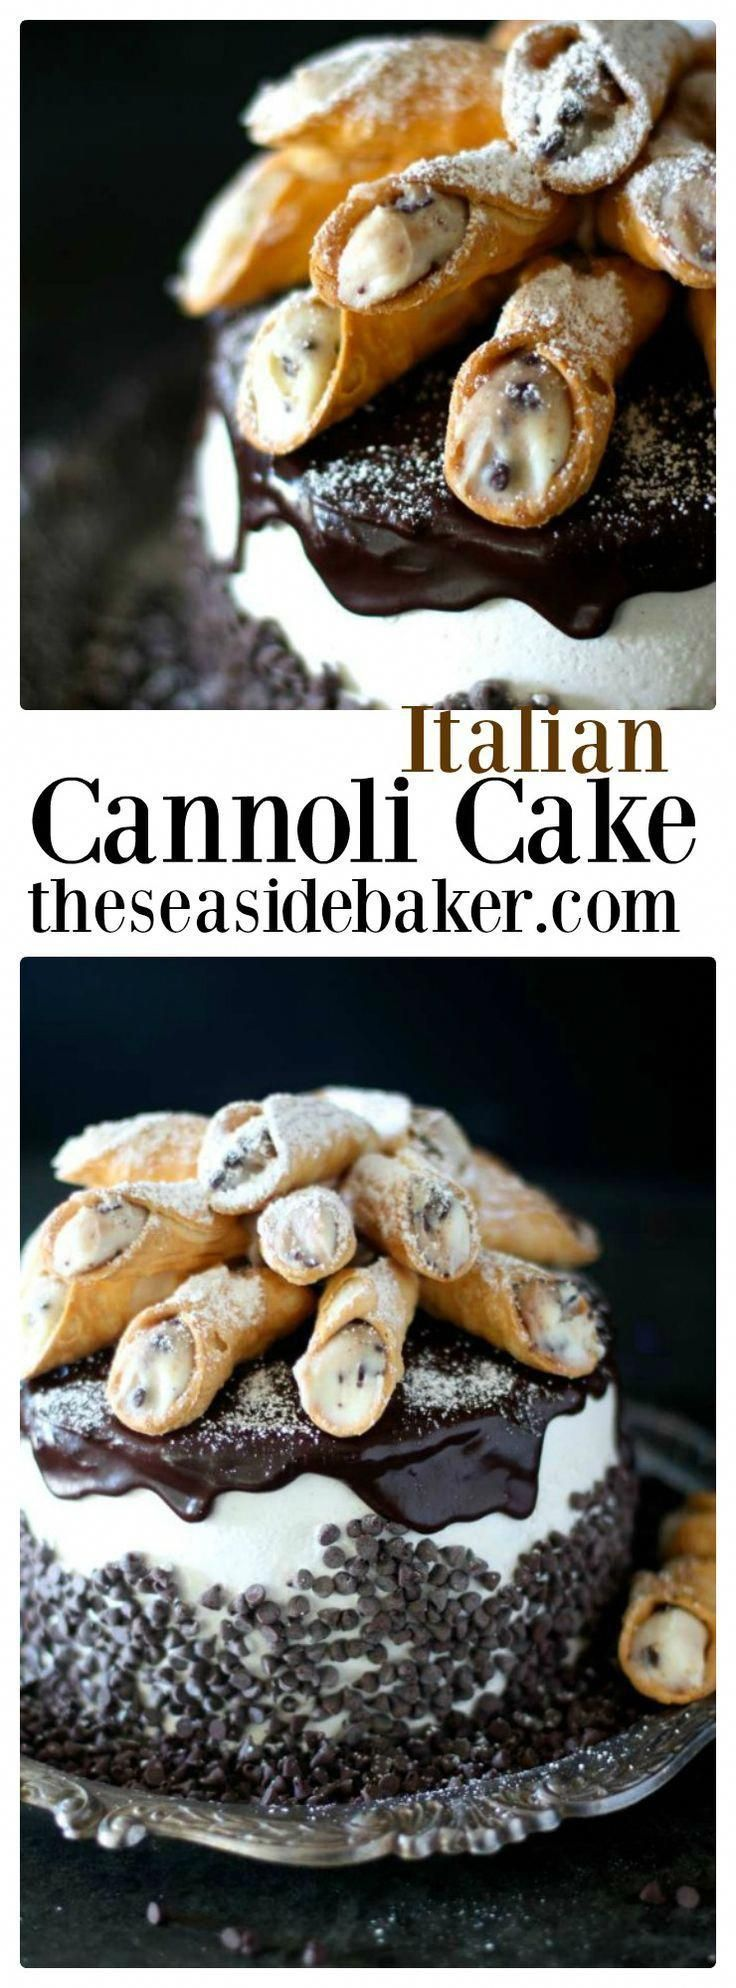 Italian Cannoli Cake - although not necessarily a #valentinesday recipe, anythin... - #although #anythin #cannoli #italian #necessarily #recipe #valentinesday - #ItalianDesserts